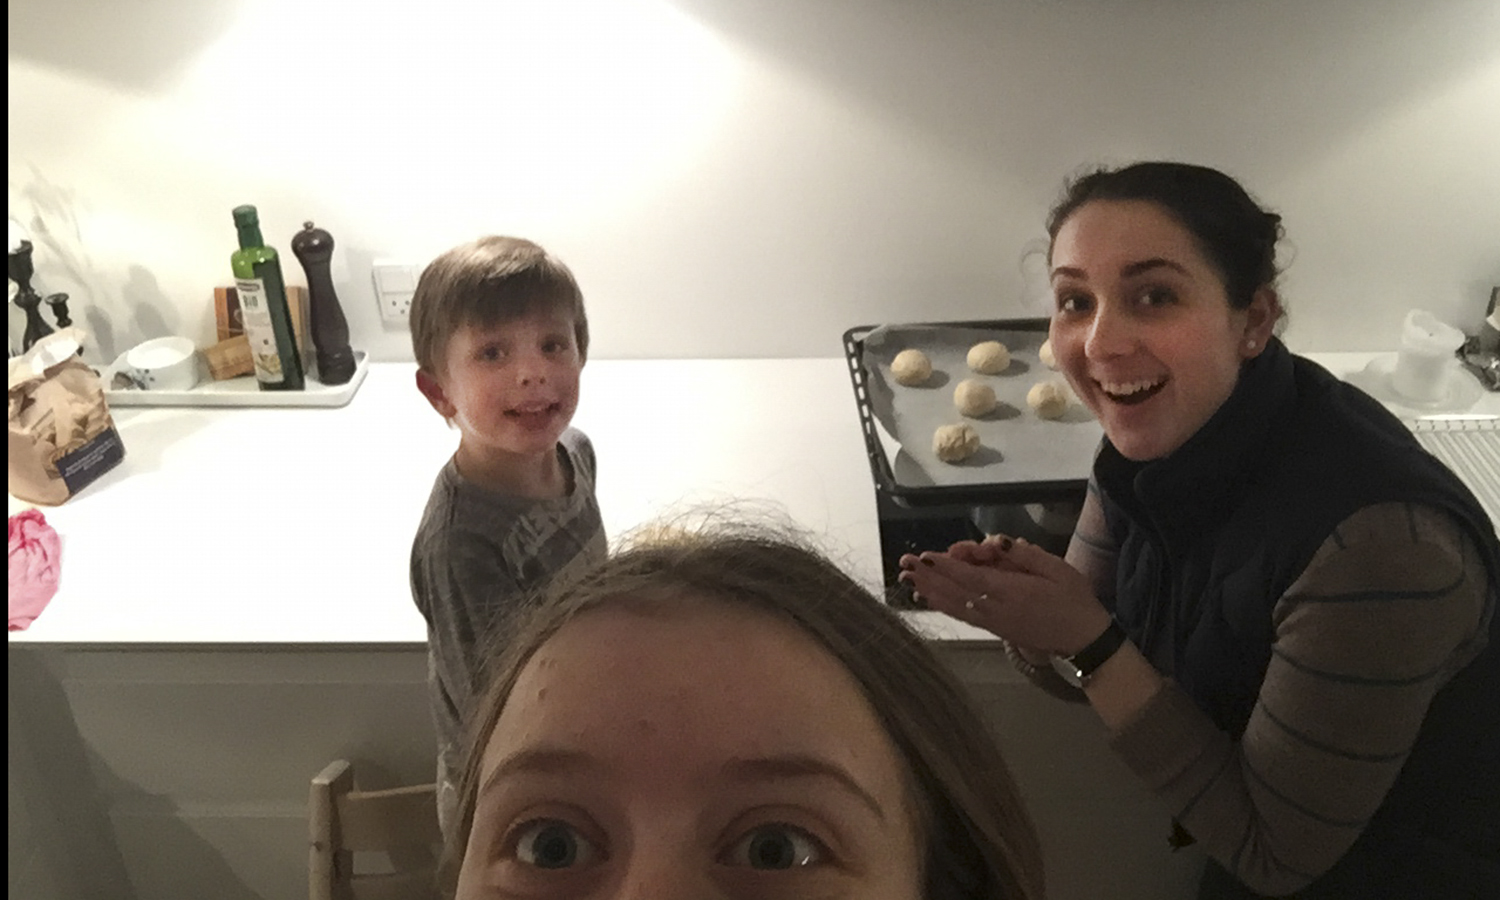 After studying abroad in Copenhagen in fall 2016, Elise Wyatt '18 returns to visit her my host family over spring break.